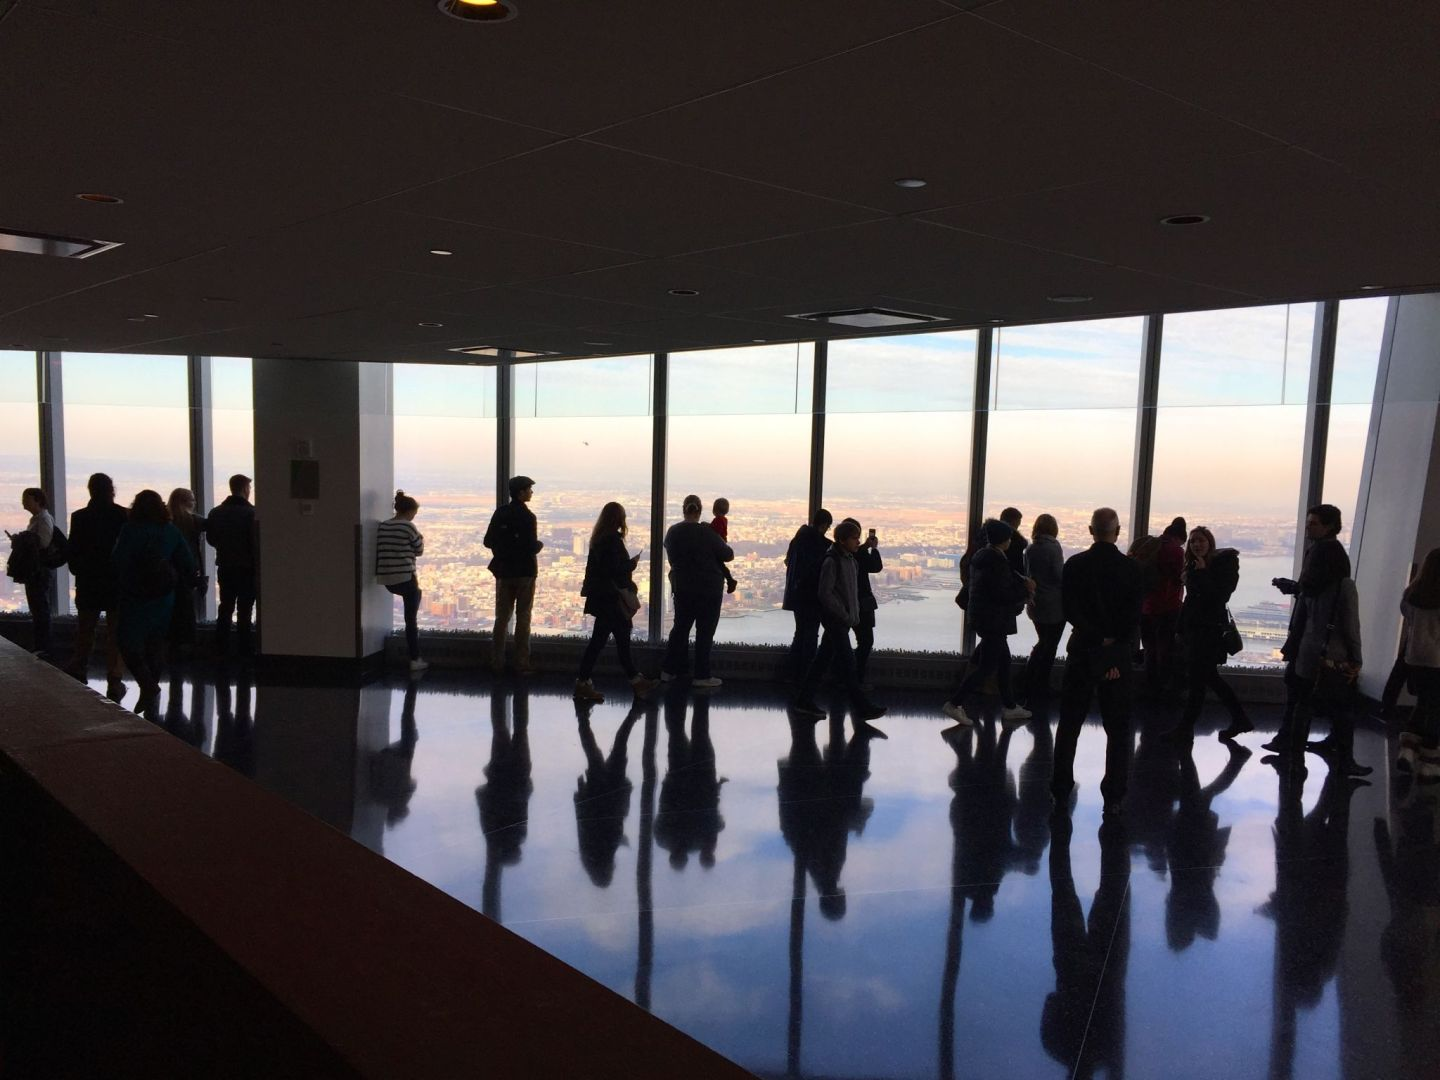 One World Observatory: Complete Visitors Guide